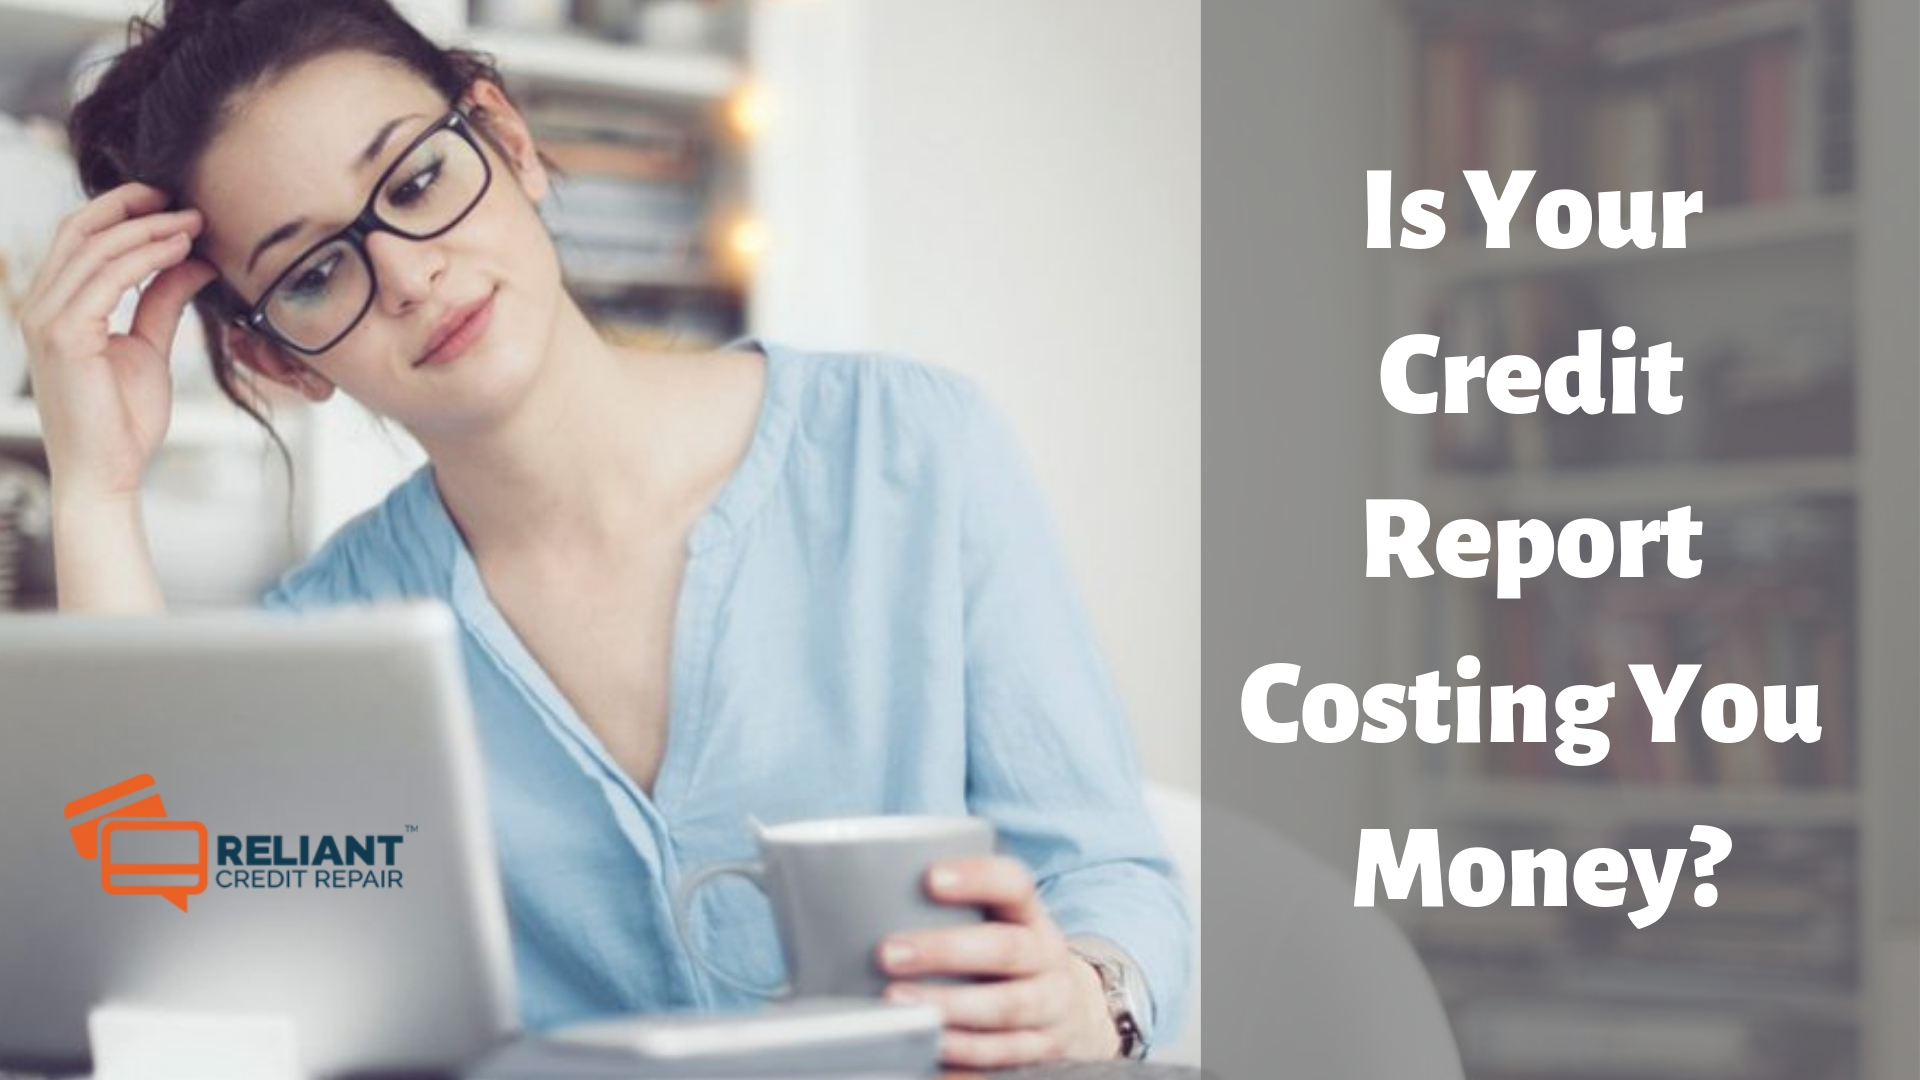 Is Your Credit Report Costing You Money